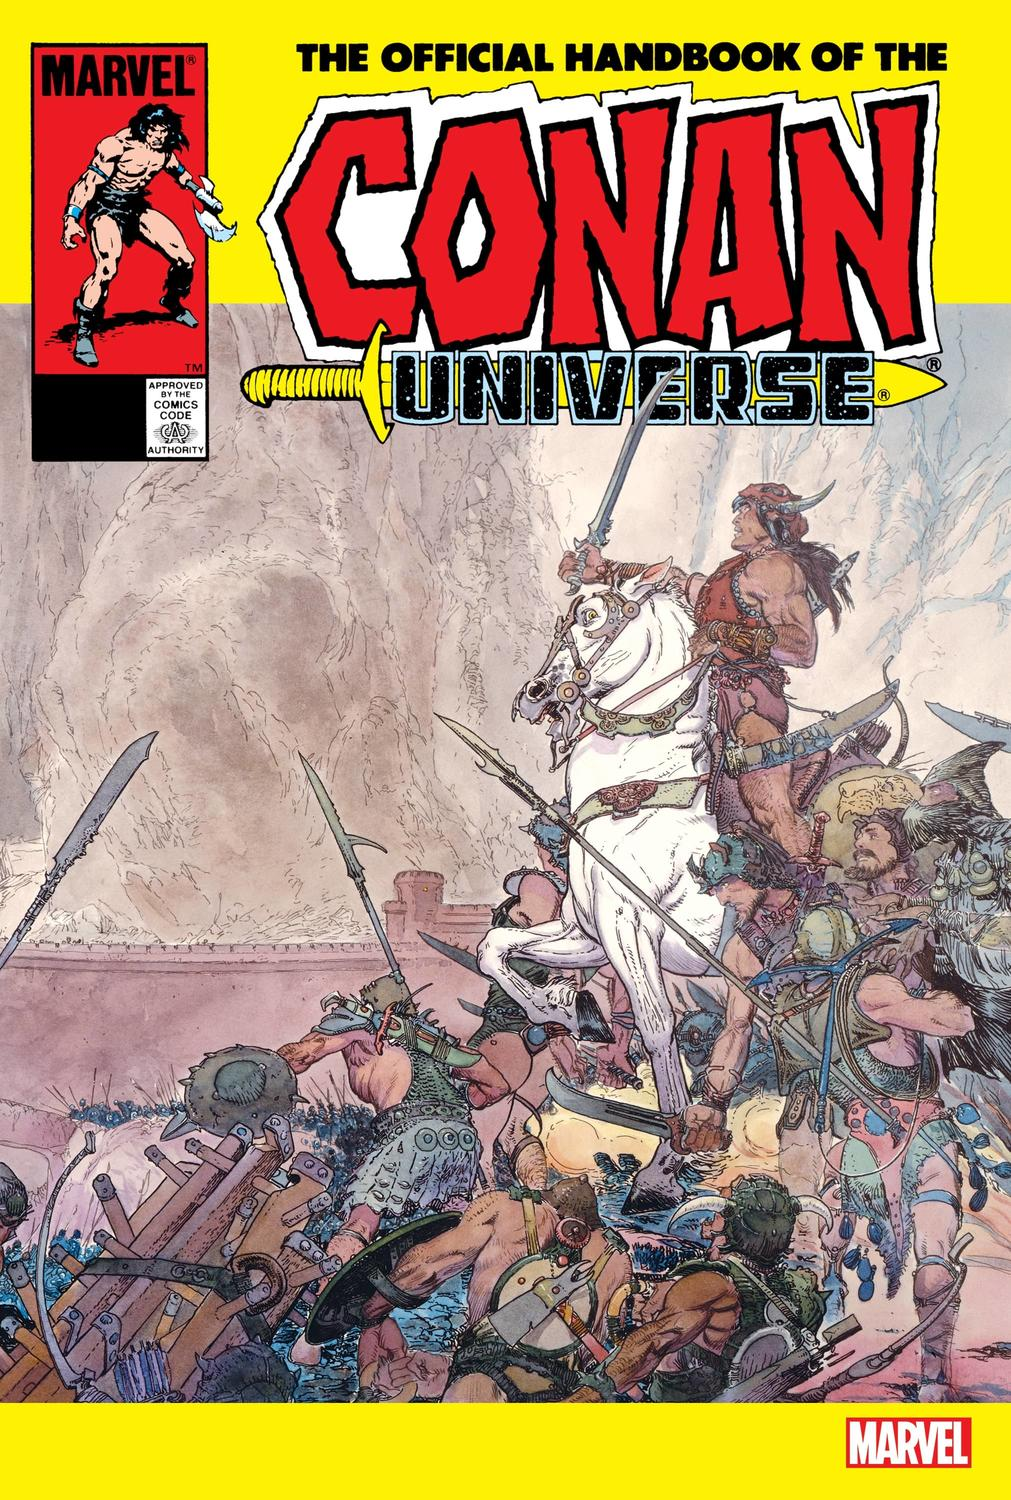 THE OFFICIAL HANDBOOK OF THE CONAN UNIVERSE ANNIVERSARY EDITION WRITTEN BY ALAN ZELENETZ, COVER BY MICHAEL KALUTA